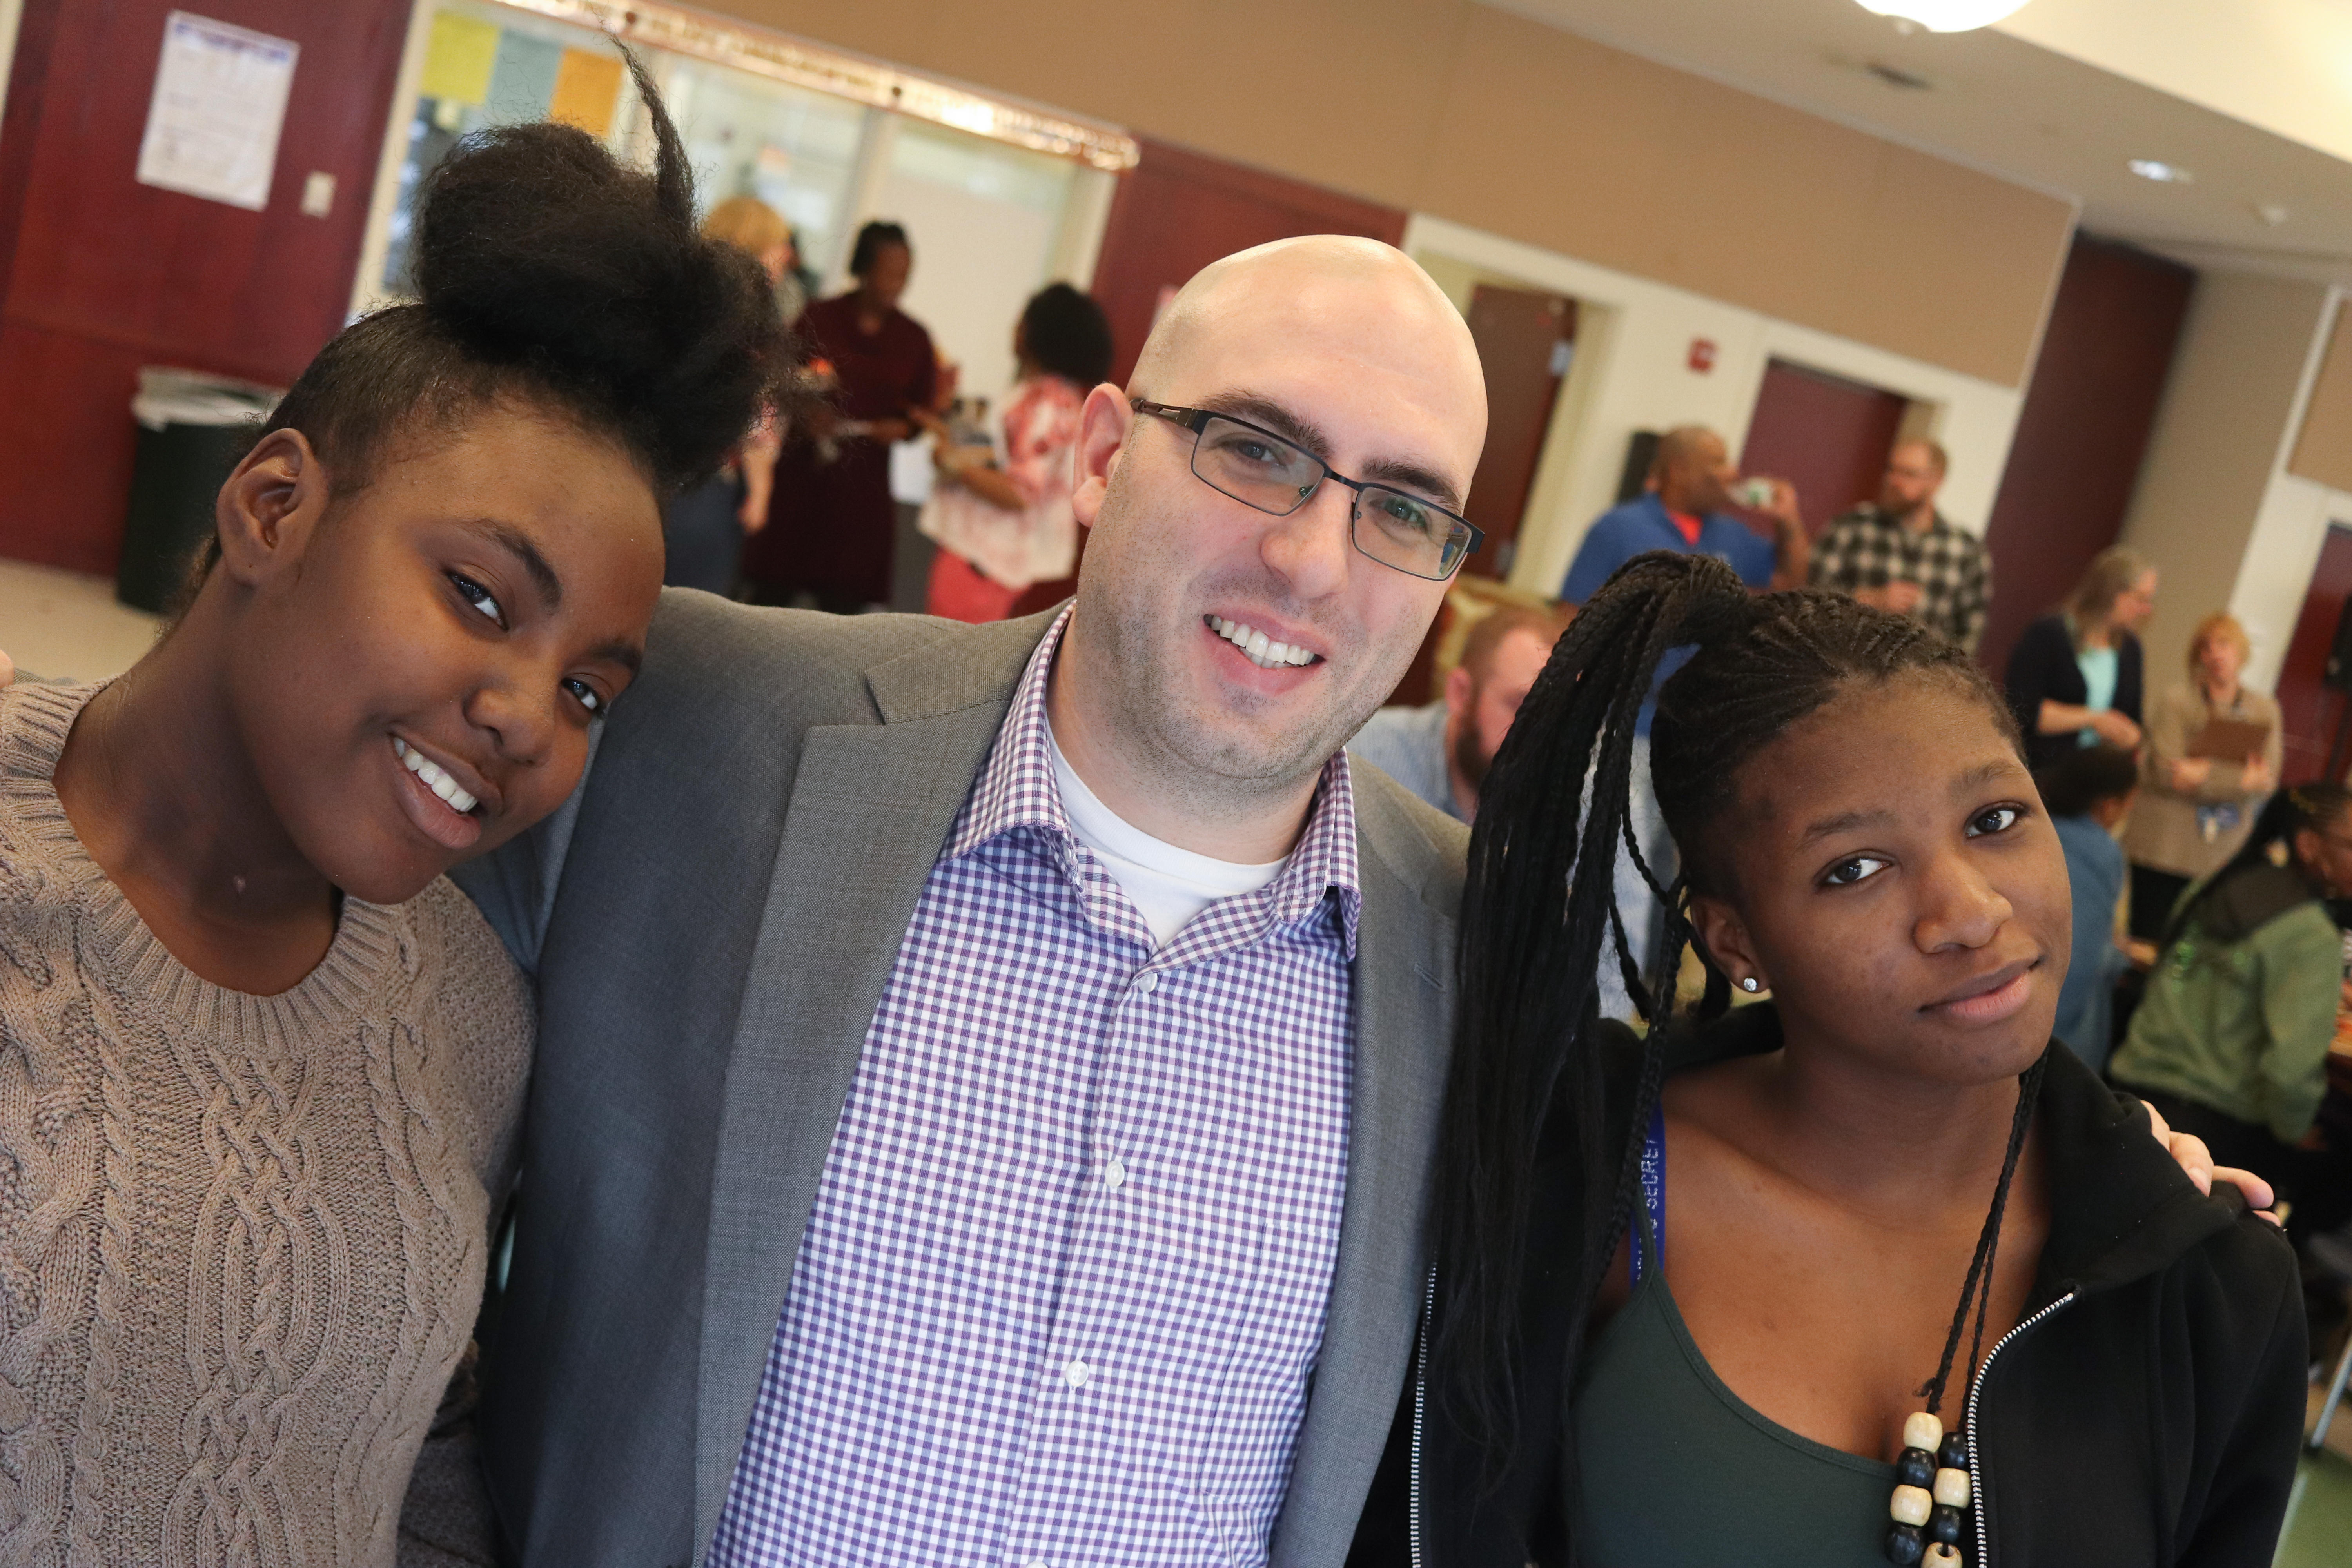 Two female students and Principal William Rivers smiling for a group picture in the cafeteria.